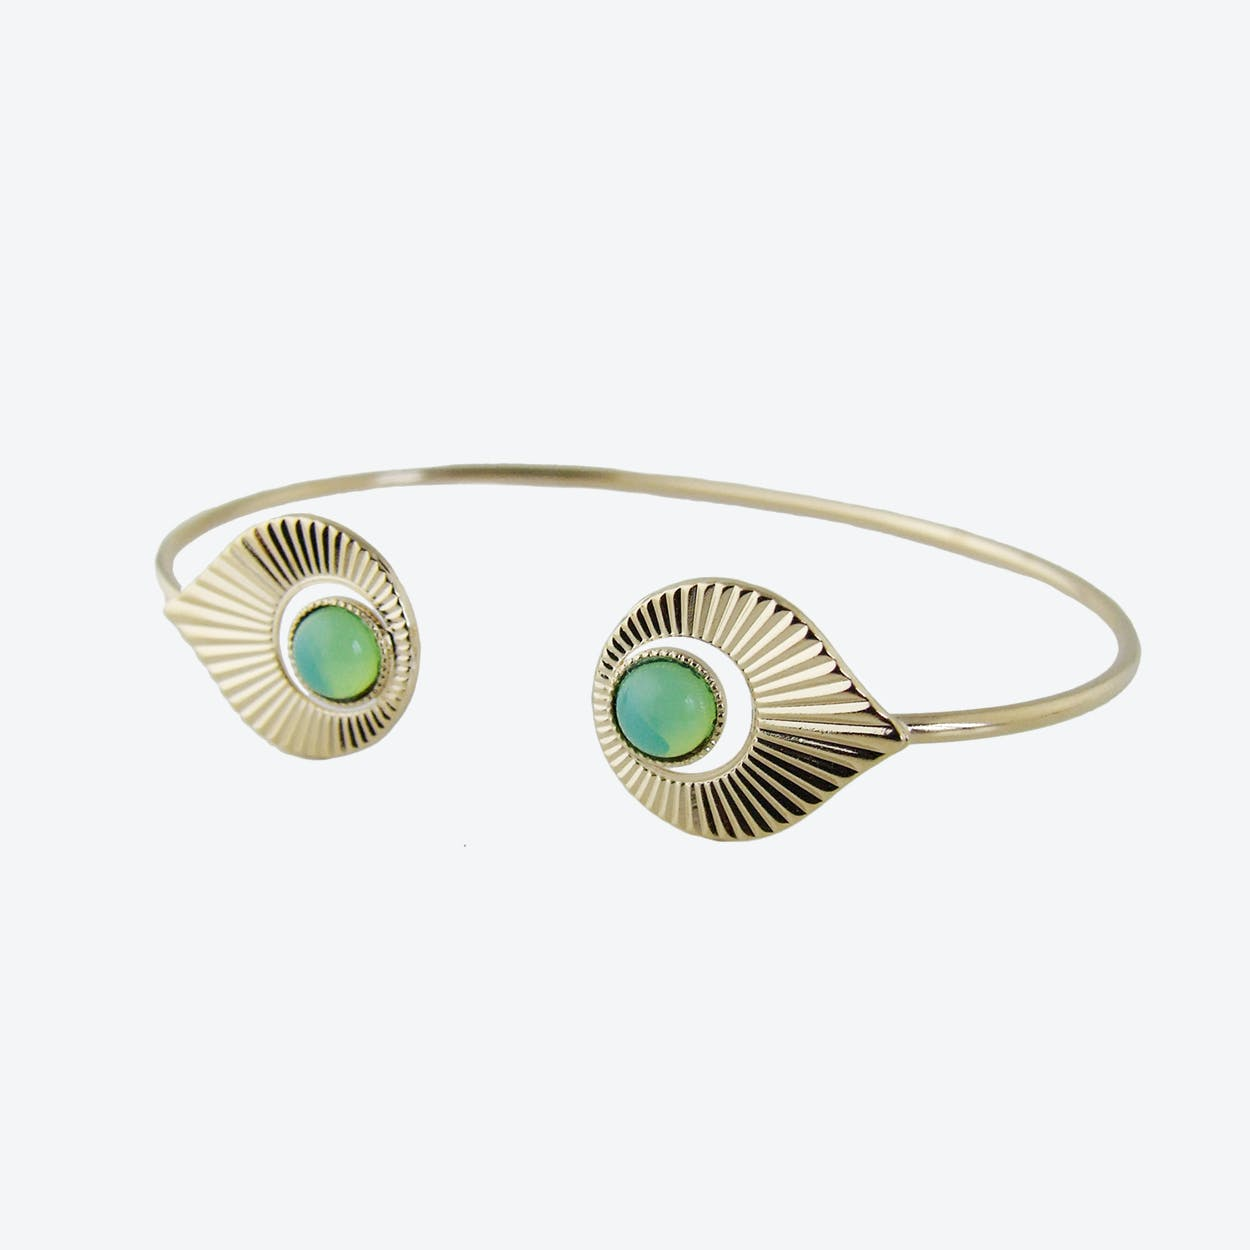 Gold Art Deco inspired Open Bangle in Mint